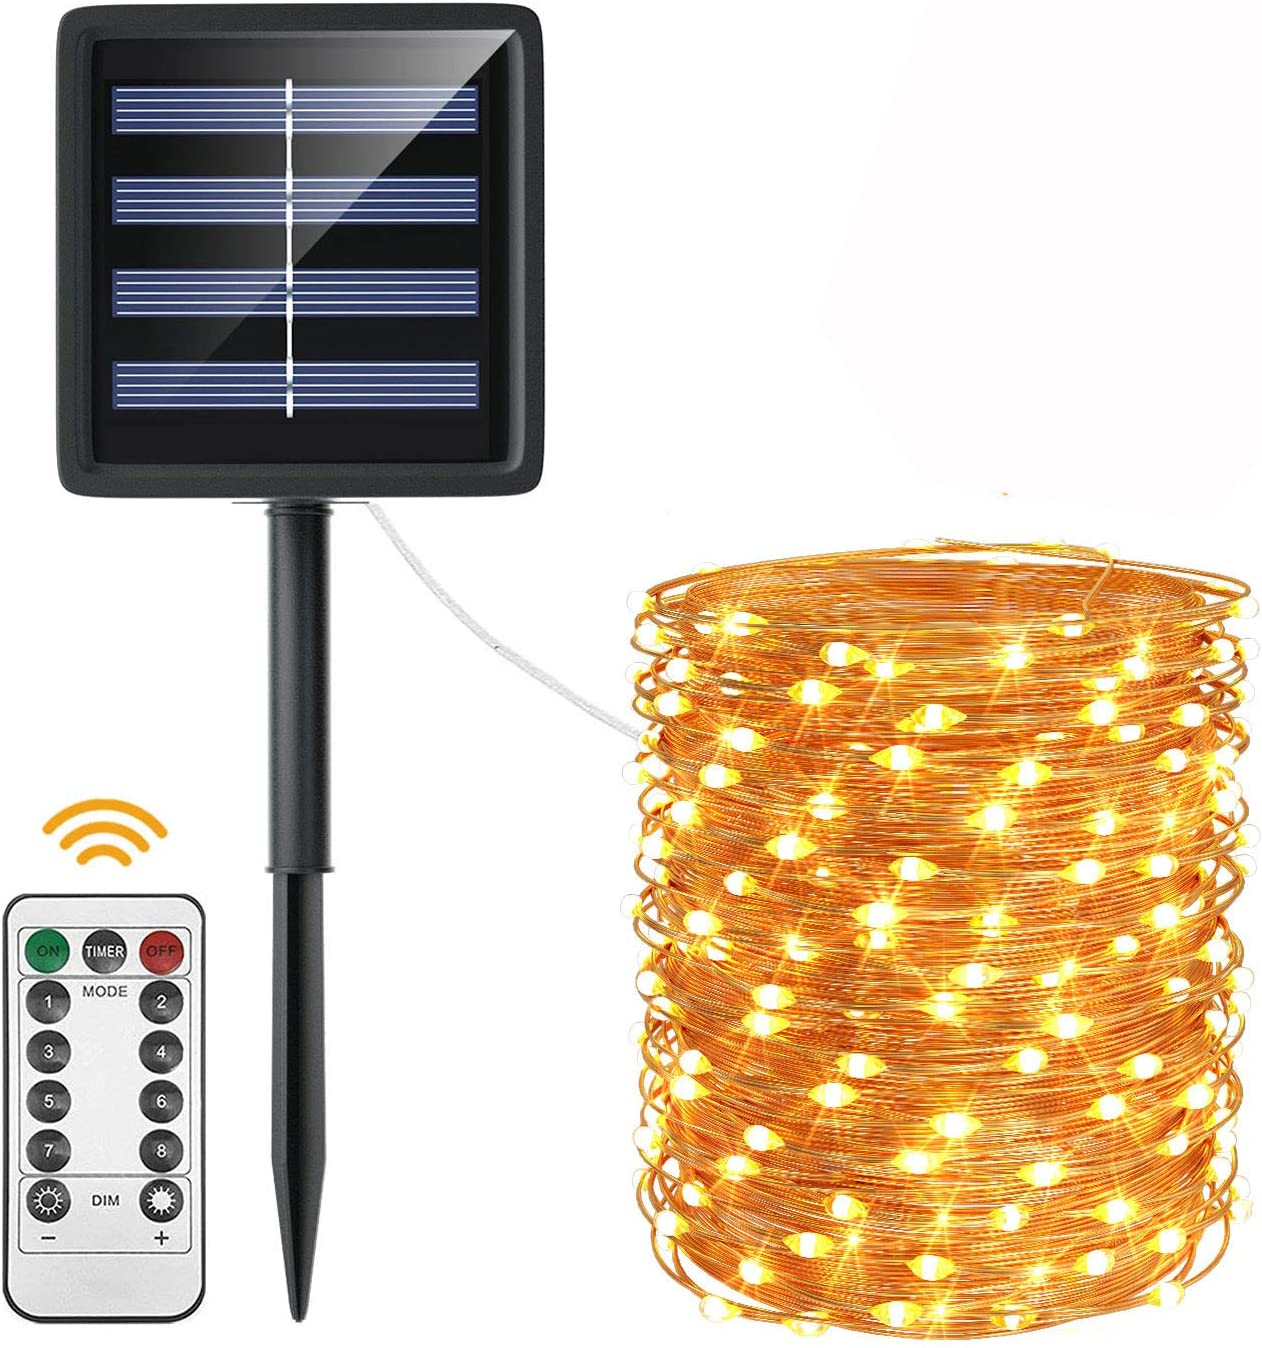 ACCGUYS Solar String Lights Outdoor with Remote, Upgraded 8 Modes 72 FT 200 LED Solar Powered String Fairy Lights, Waterproof Copper Wire Lights for Garden Yard Patio Party Decor(Warm White)